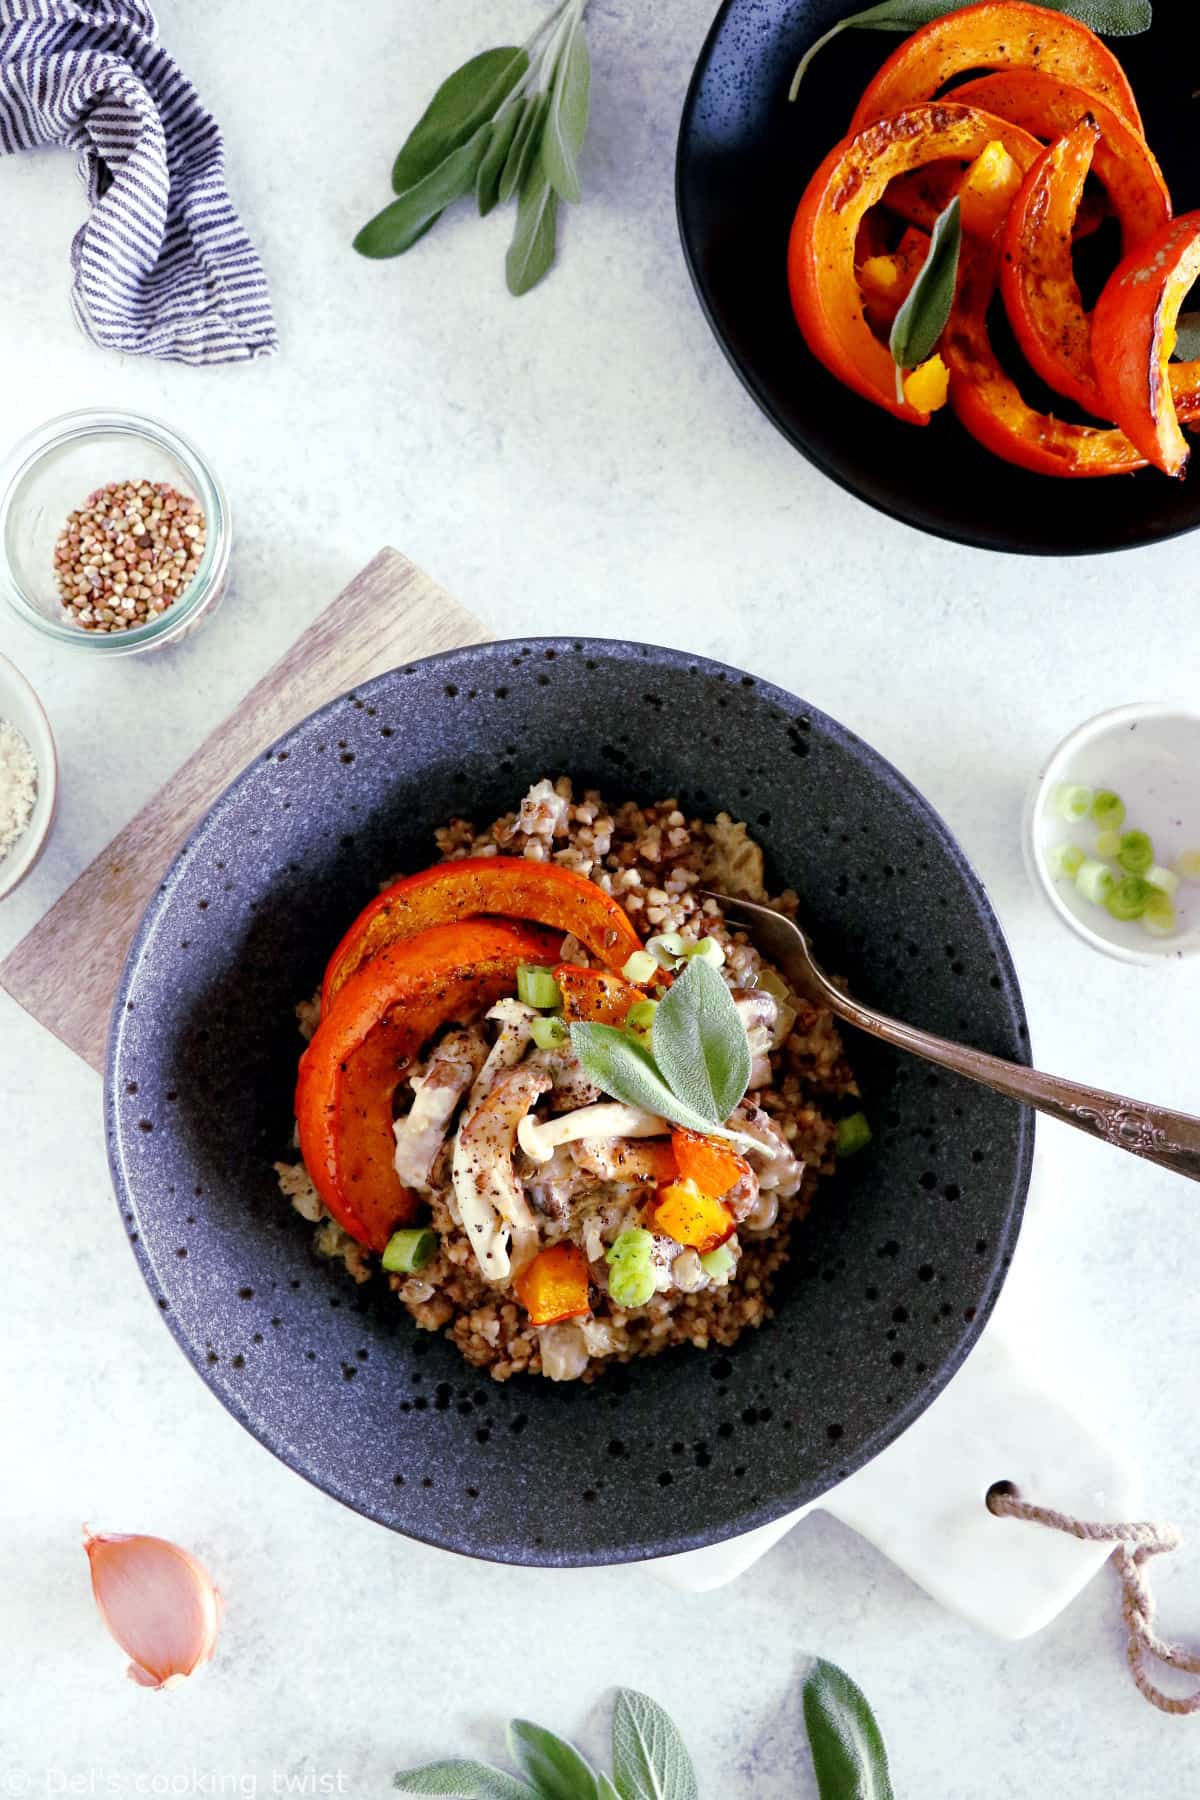 Subtle and elegant, this wild mushroom and roasted squash buckwheat risotto is a great alternative to your classic rice risotto.